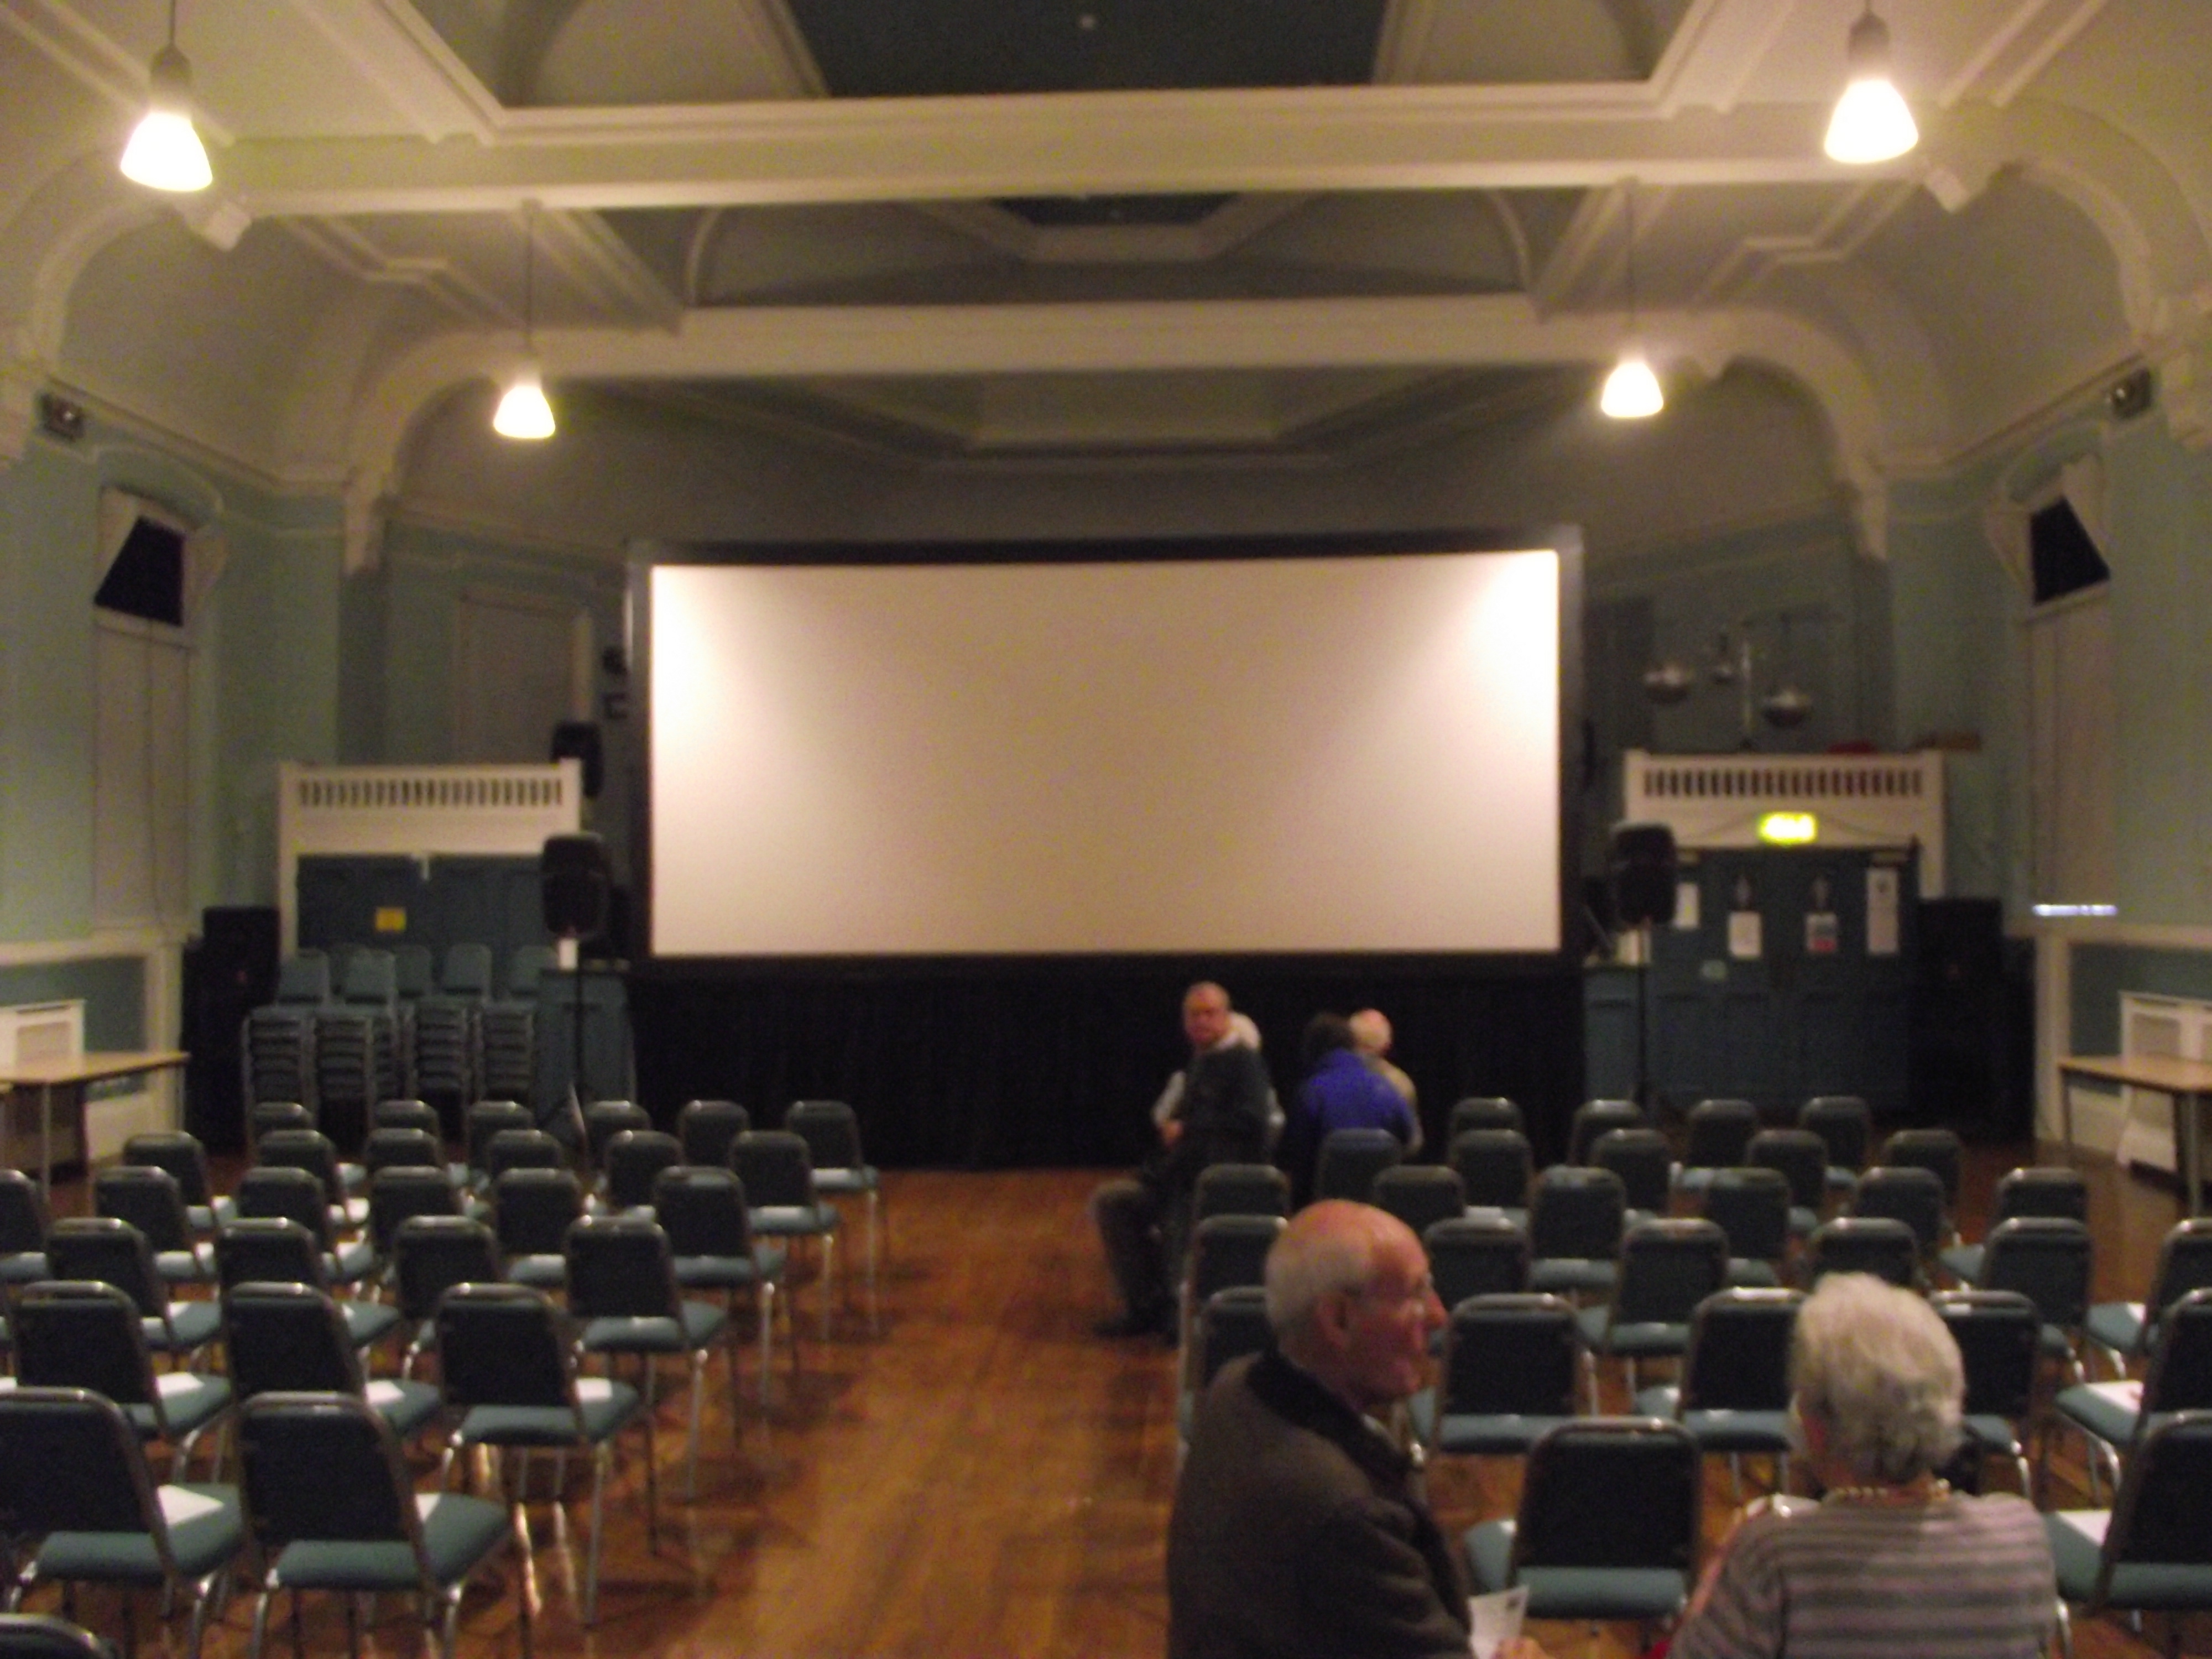 Our Cinema Screen